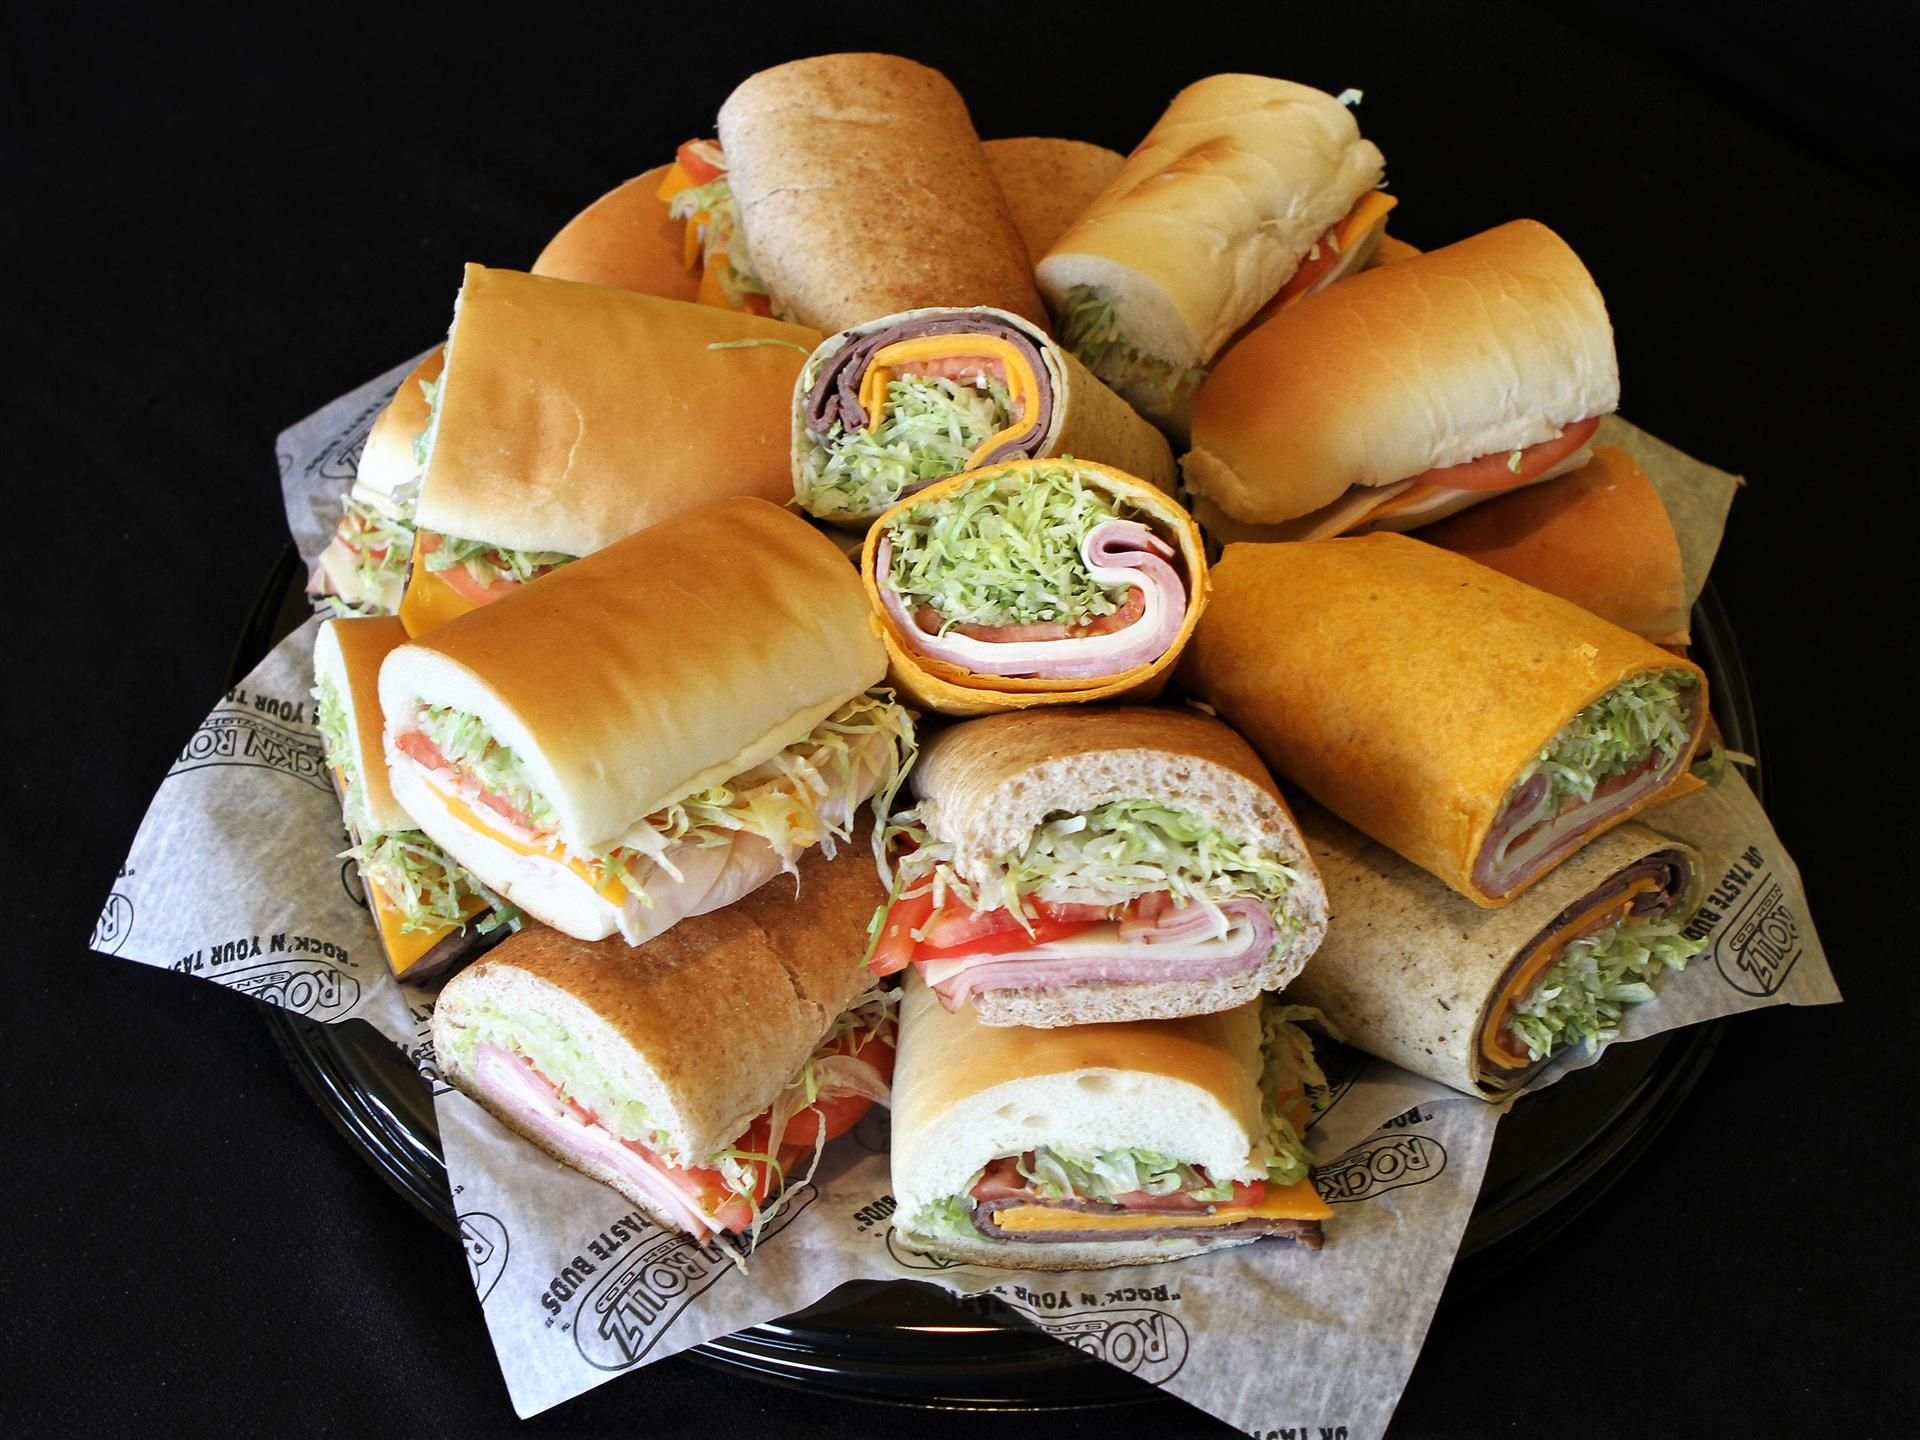 platter of assorted sandwiches and wraps